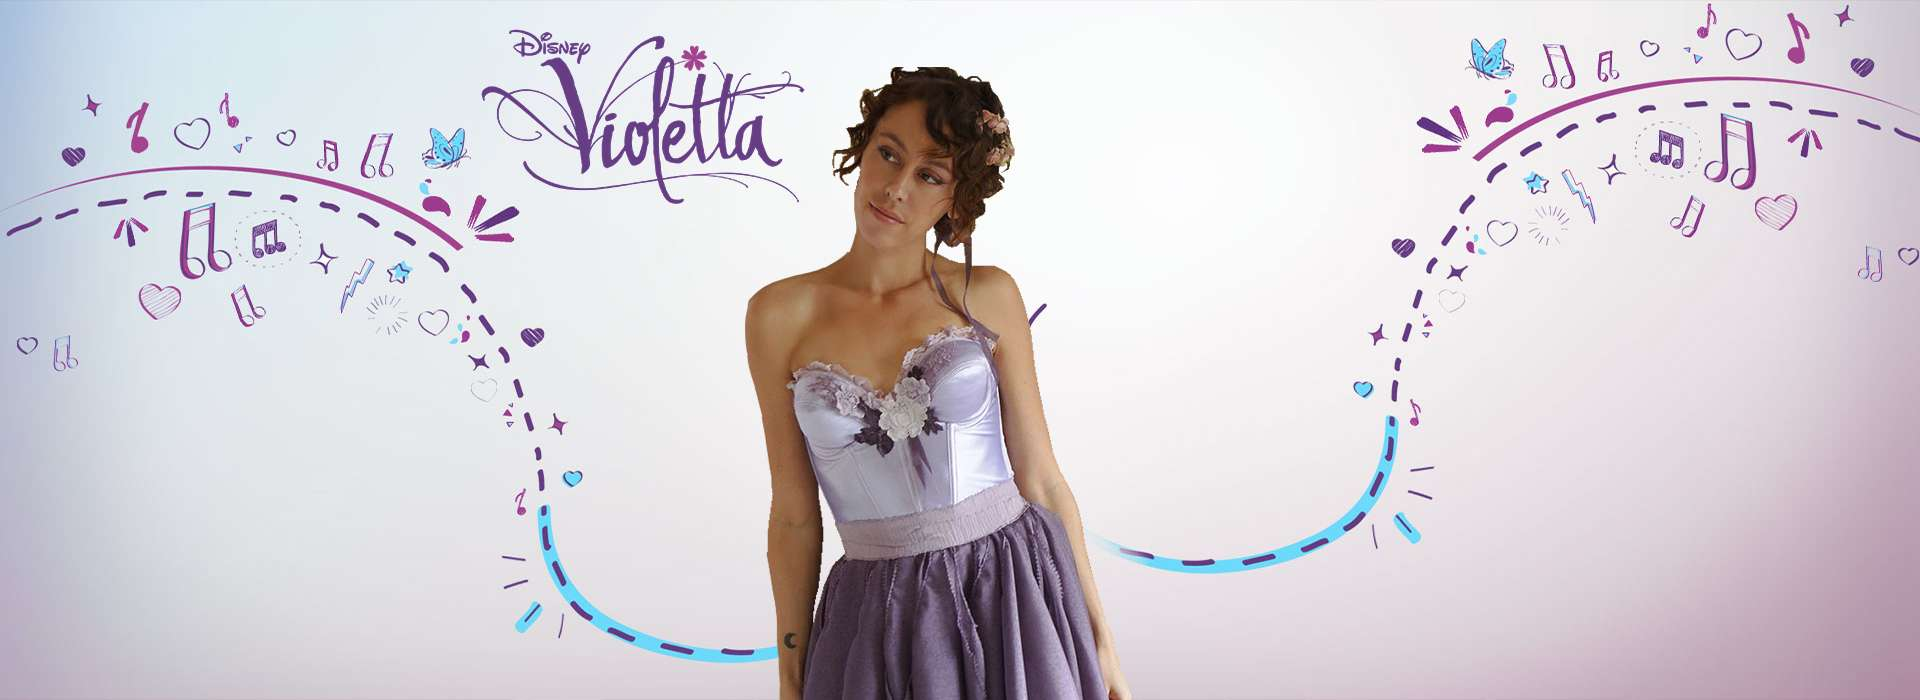 Slider d'images de l'animation Violetta